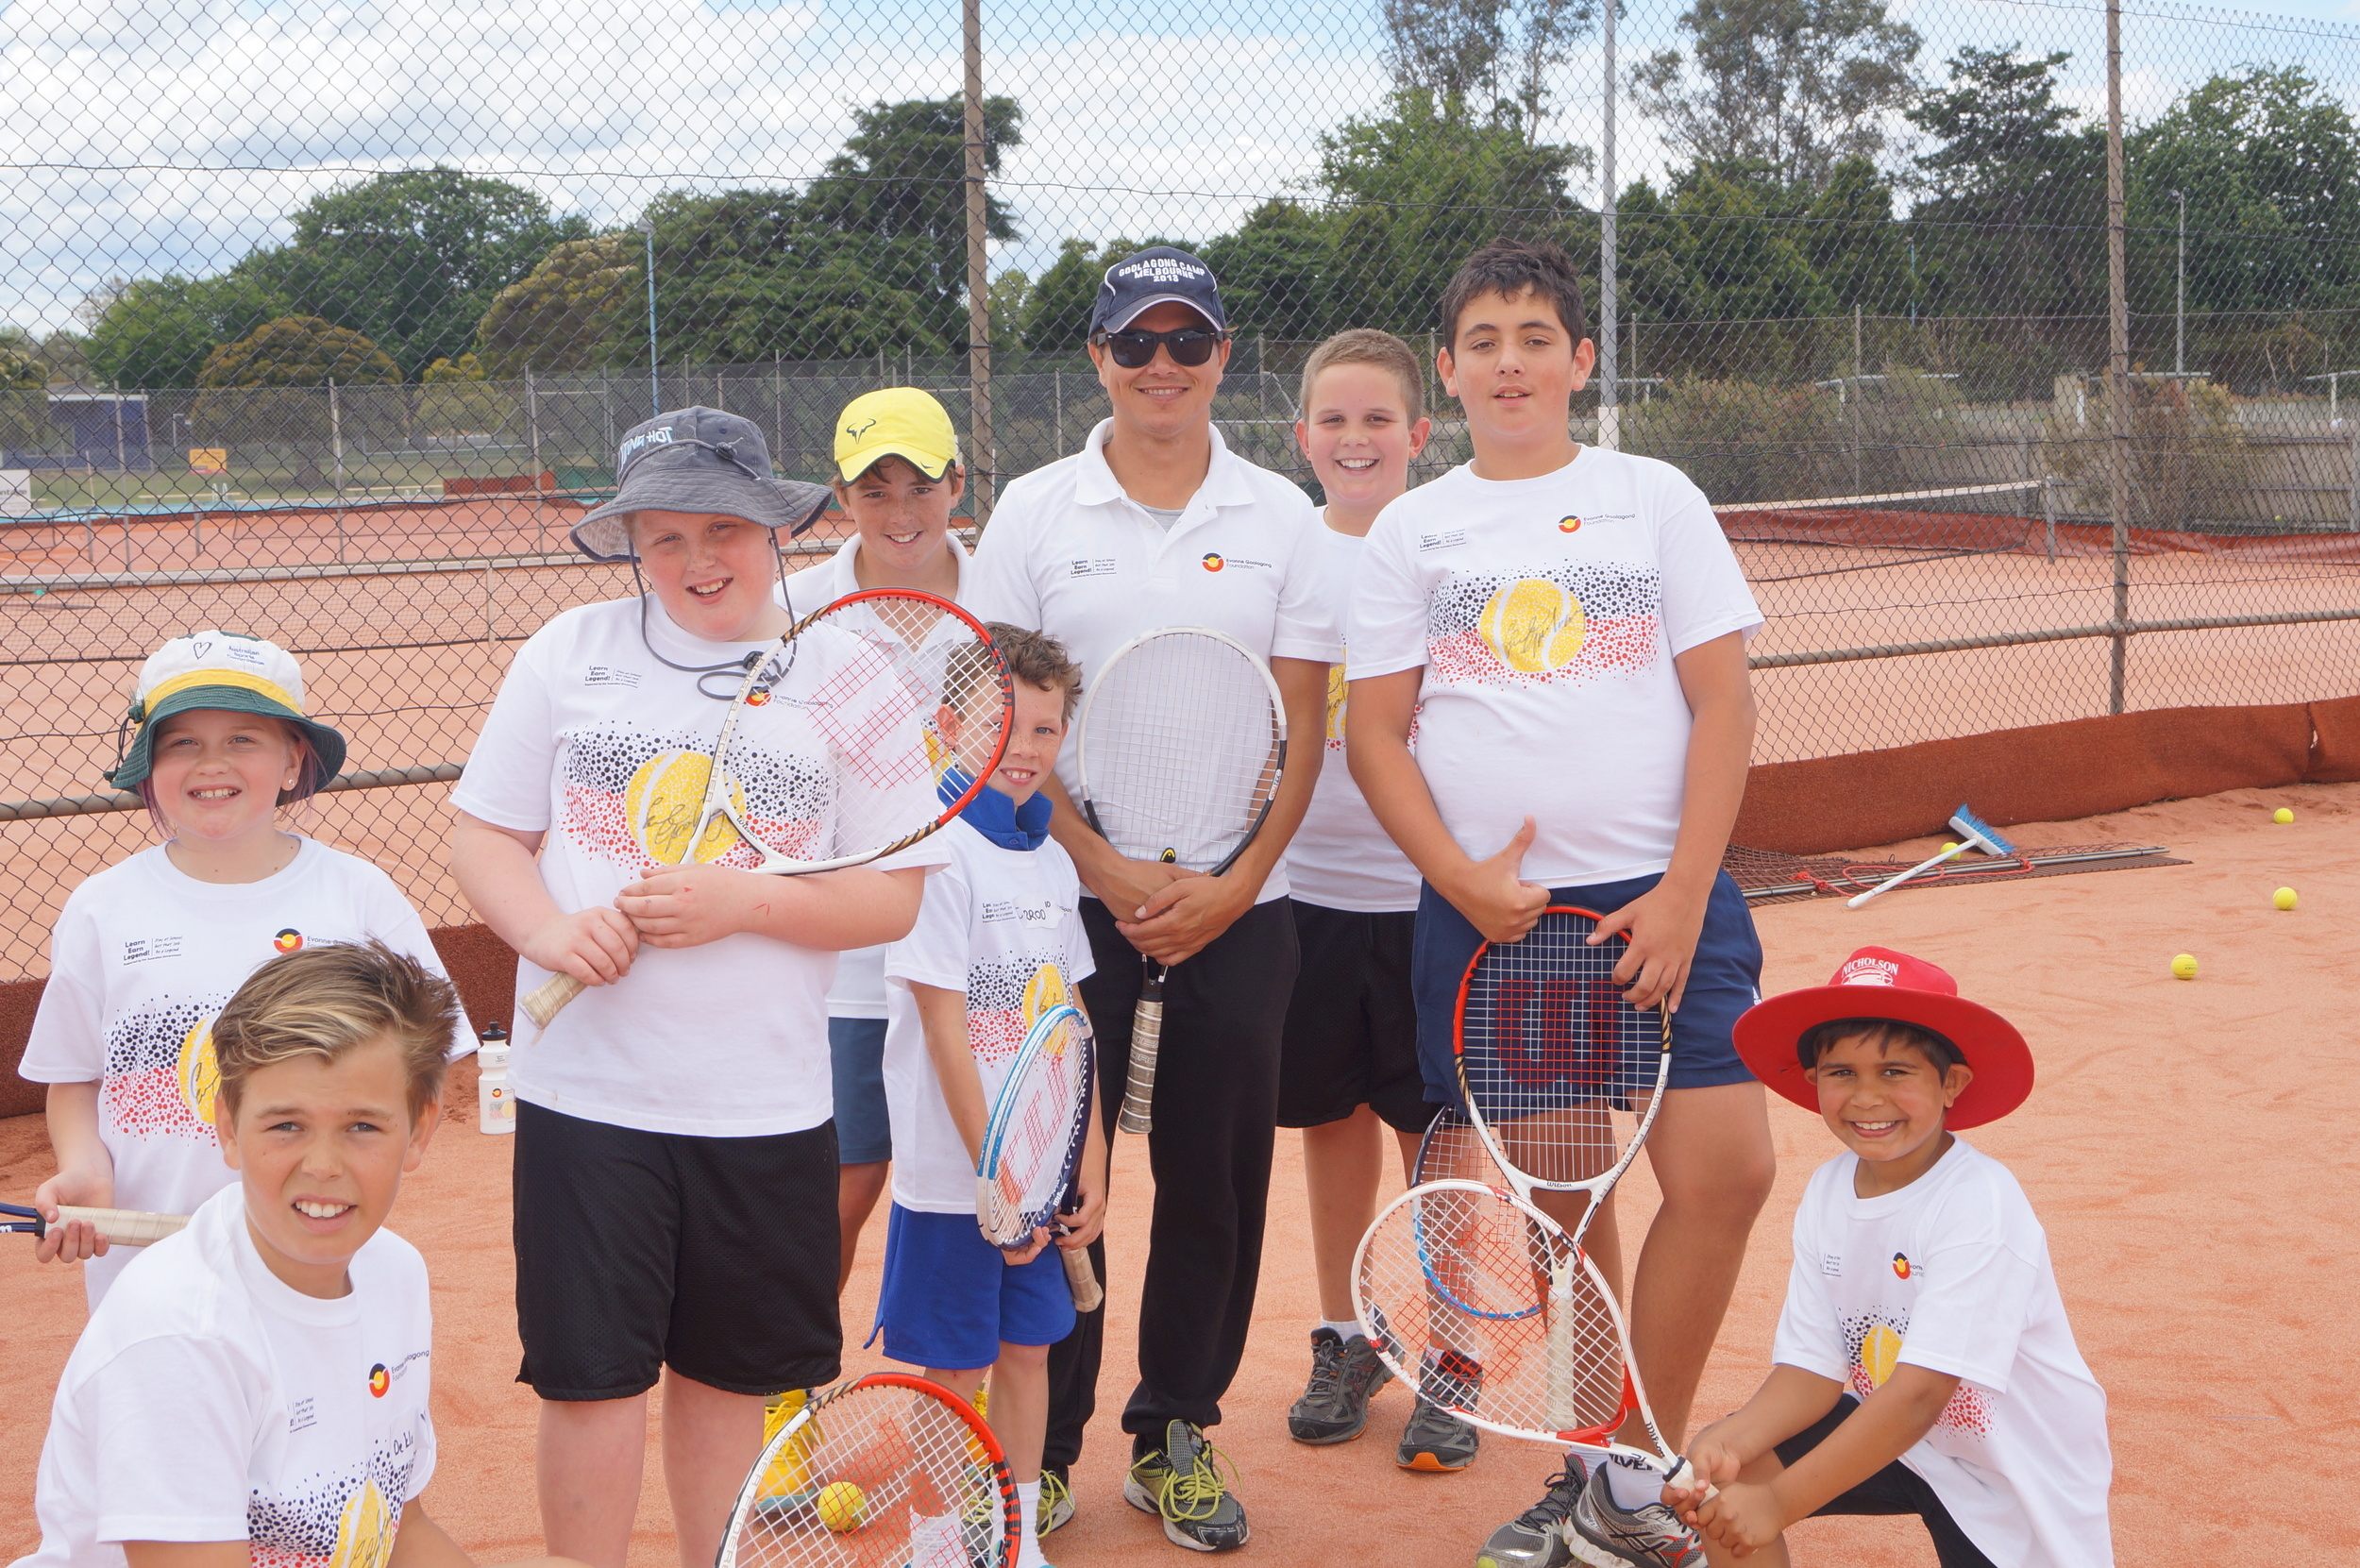 Evonne Goolagong FoundationHead Coach Anzac Leidig with some happy players including local Toby Radford (yellow hat) who has been selected for the Goolagong National Development Camp 2015. Congratulations to allon giving of their best.